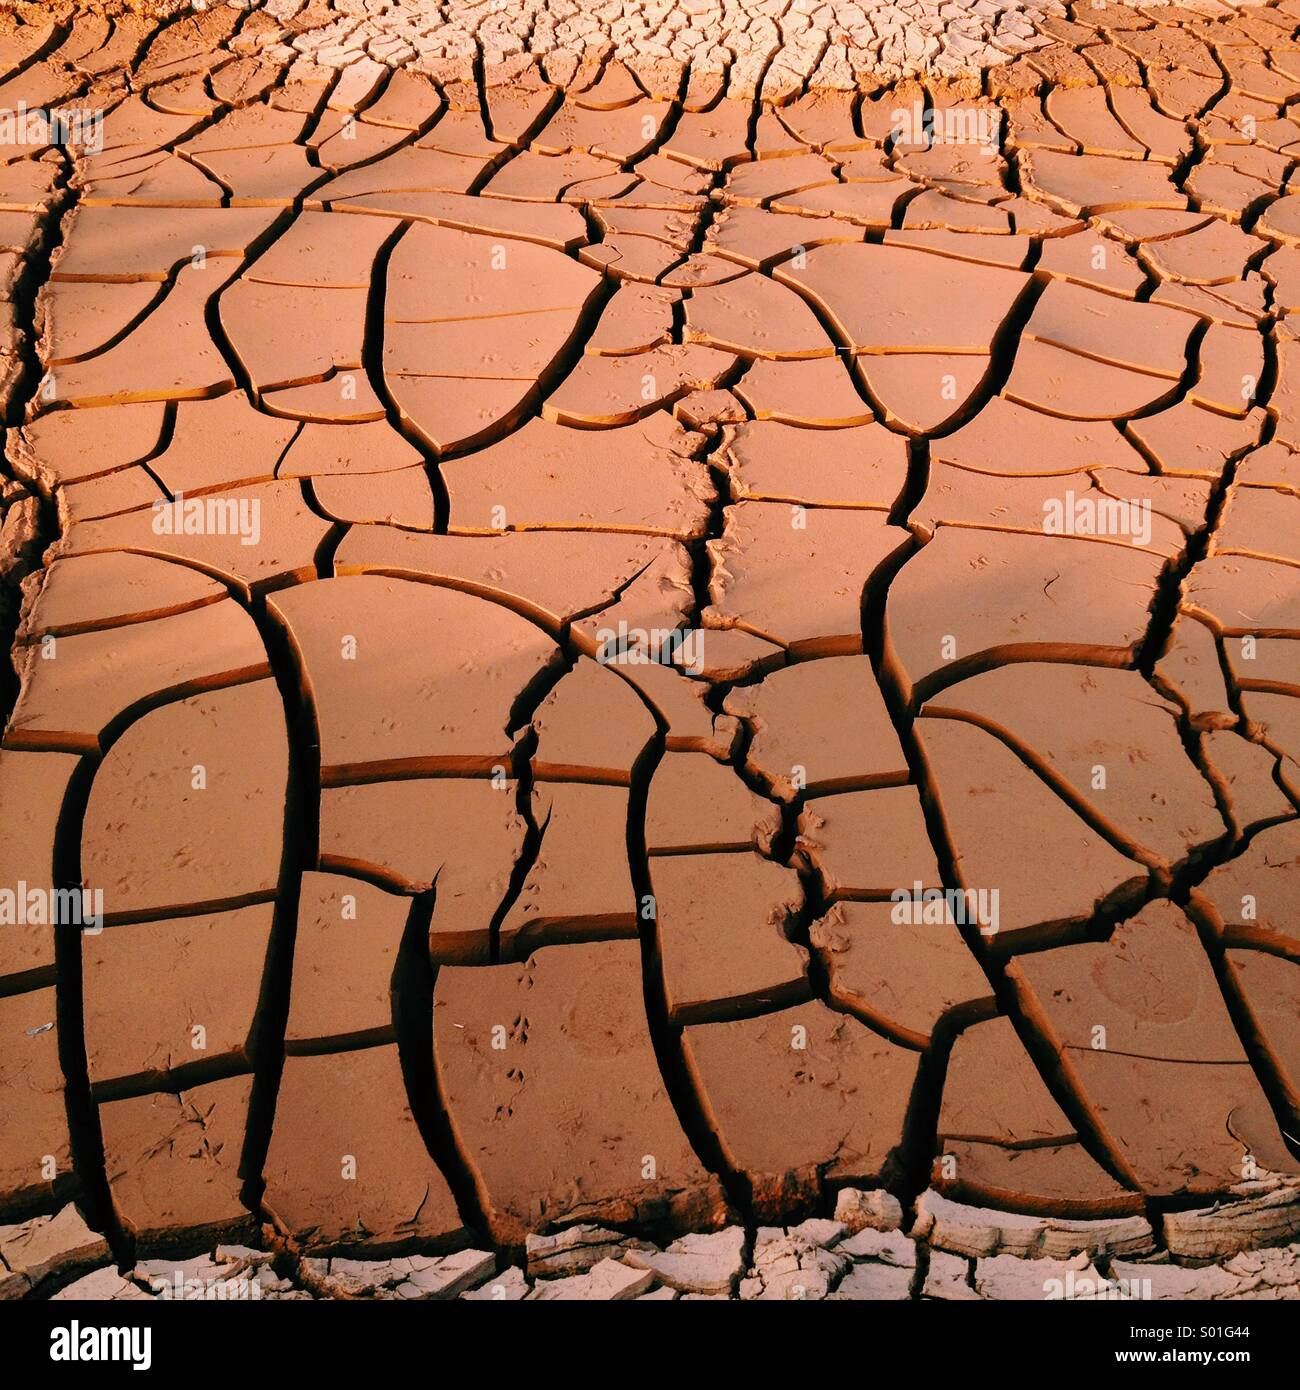 Mud cracks due to global warming - Stock Image